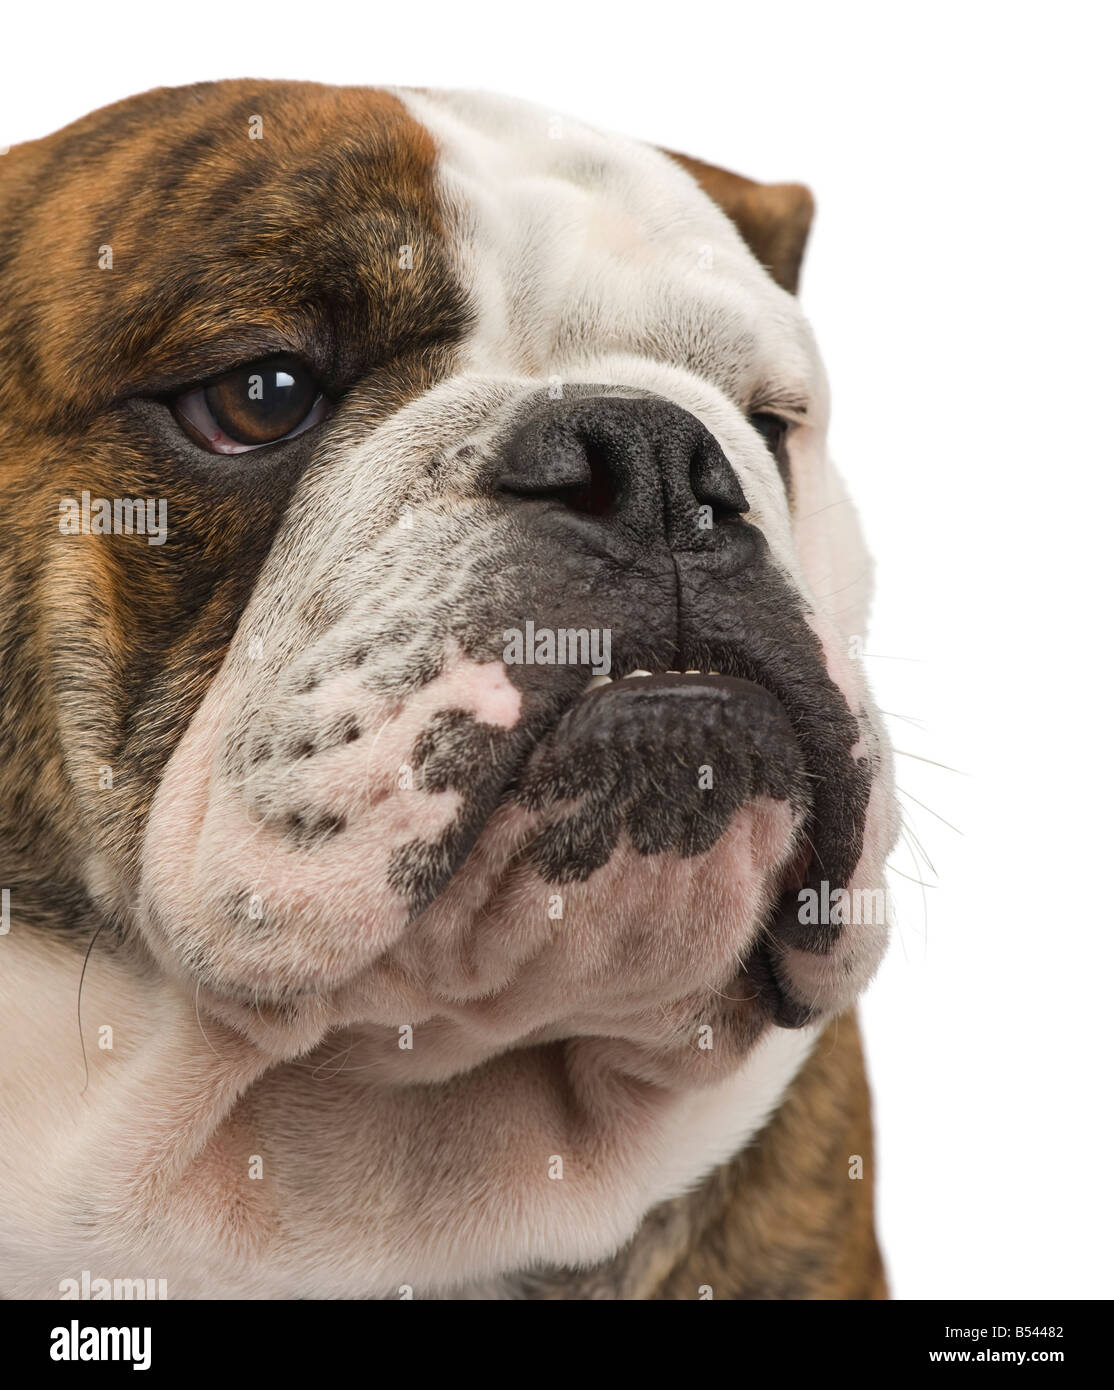 english Bulldog 6 months in front of a white background - Stock Image